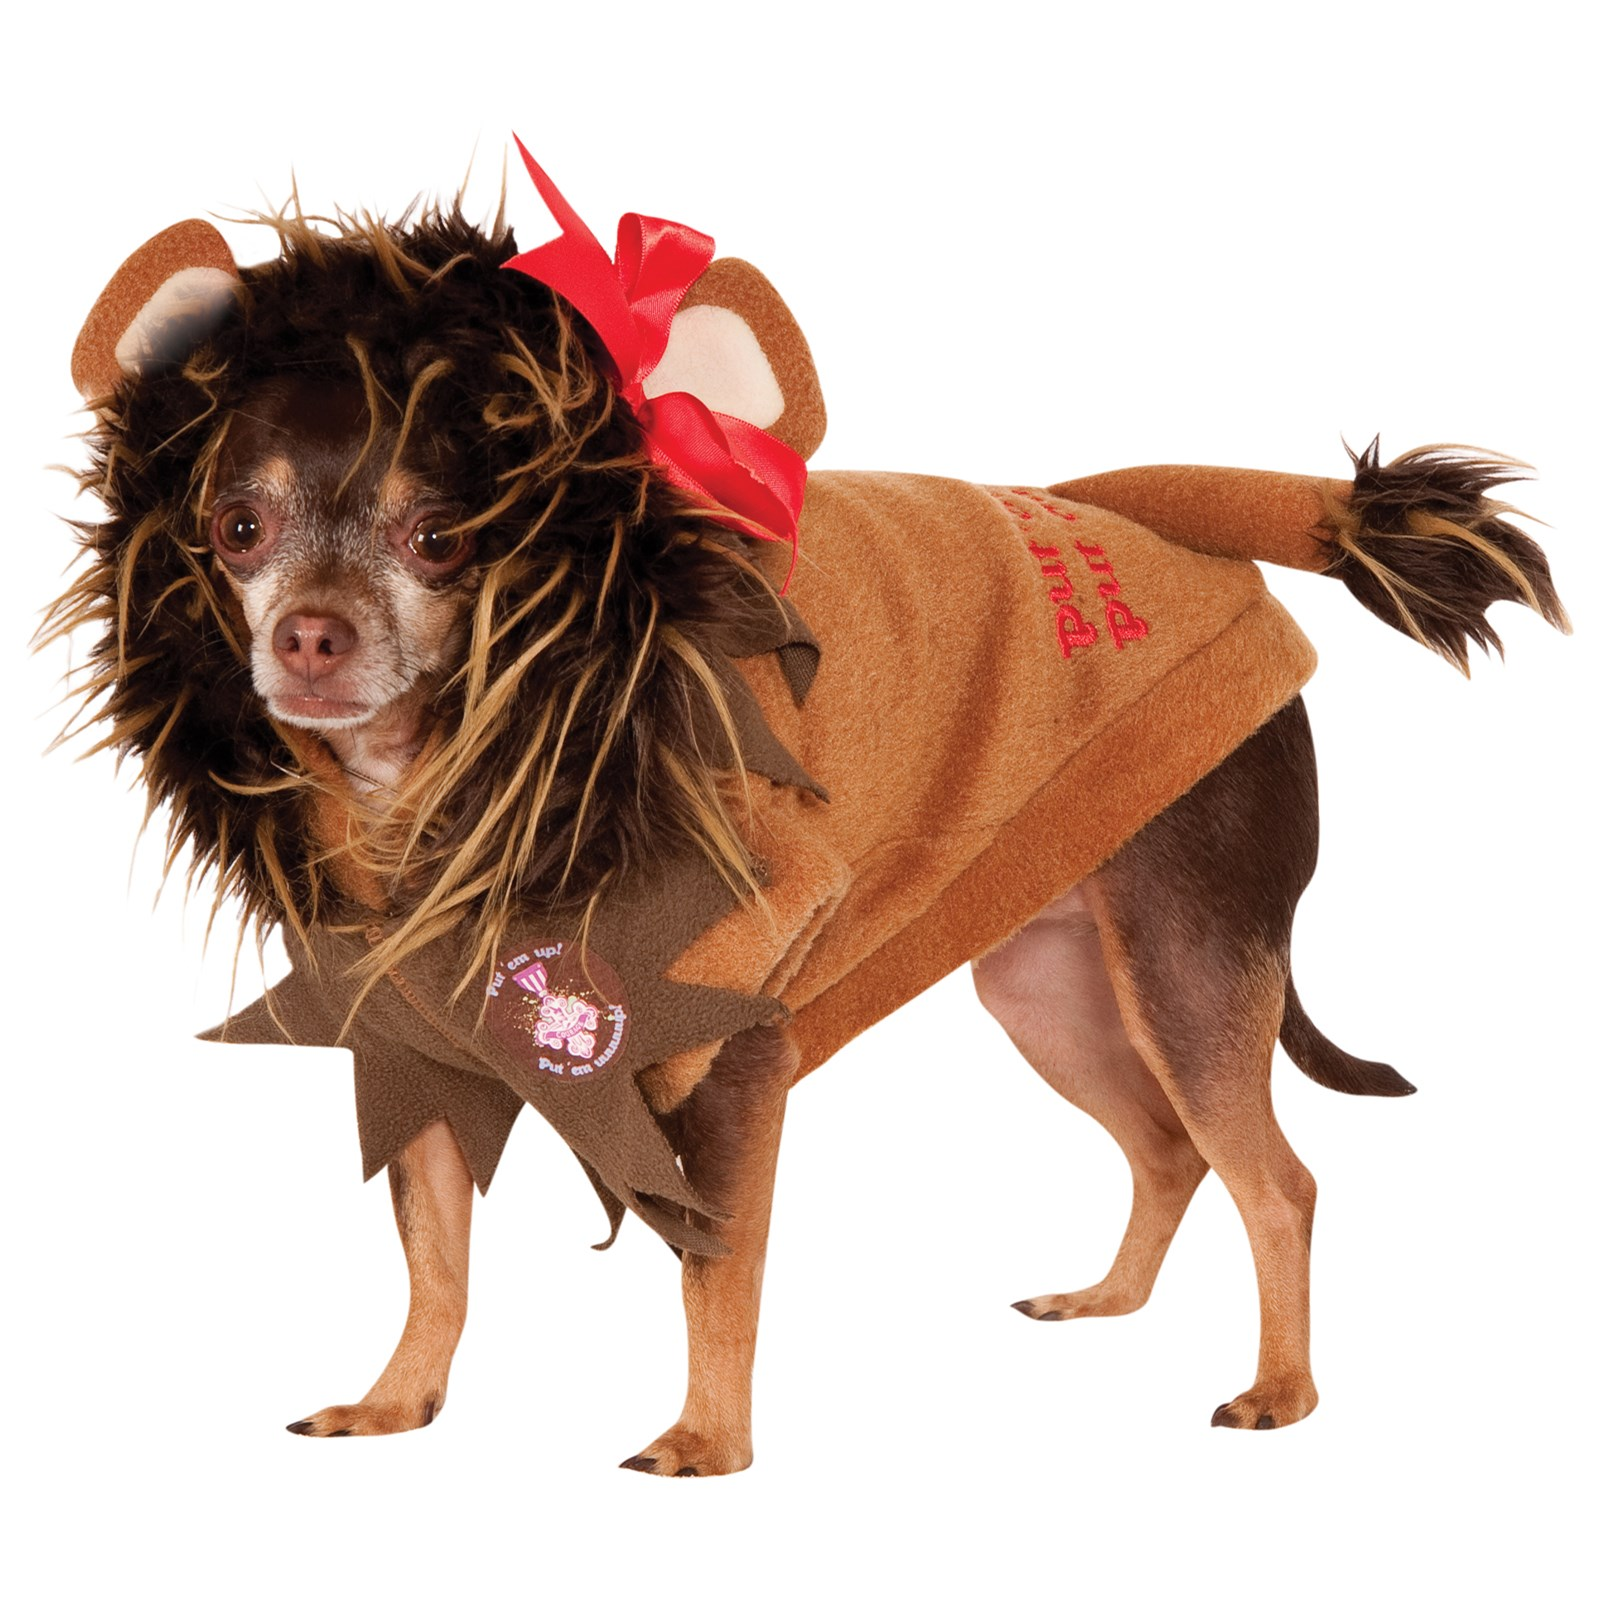 Wizard Of Oz - Cowardly Lion Dog Costume | BuyCostumes.com